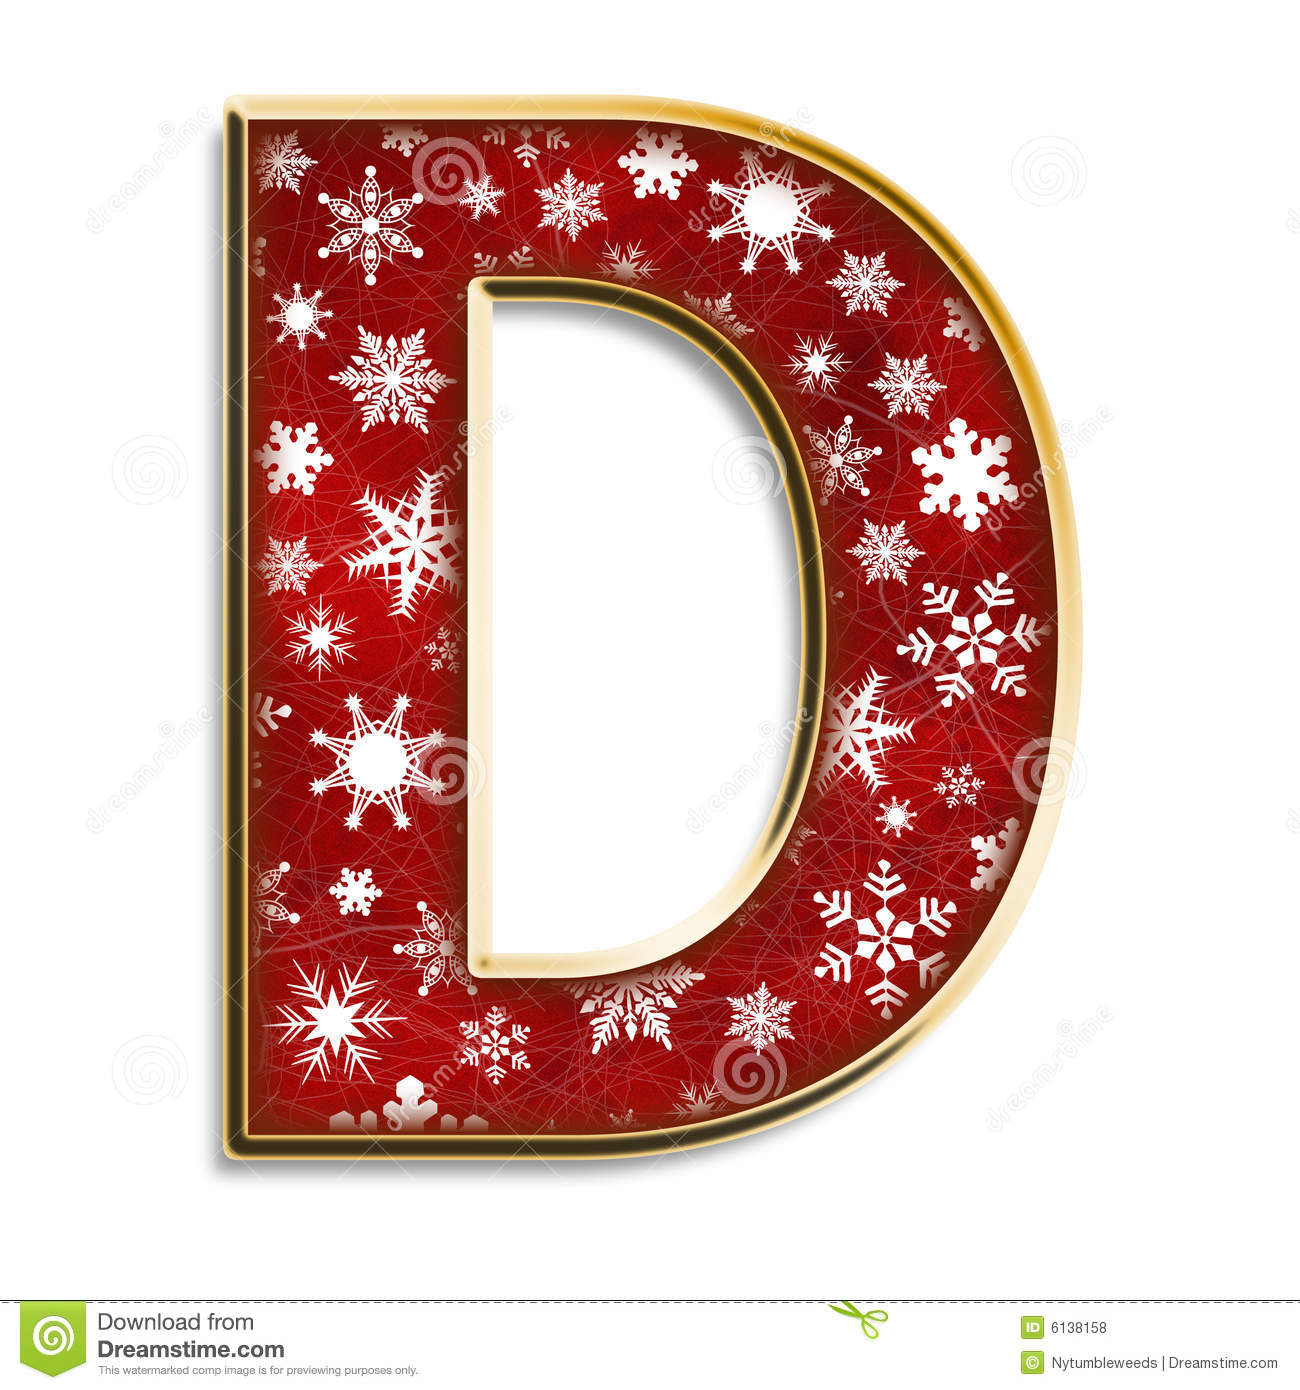 Christmas letter D in red stock illustration